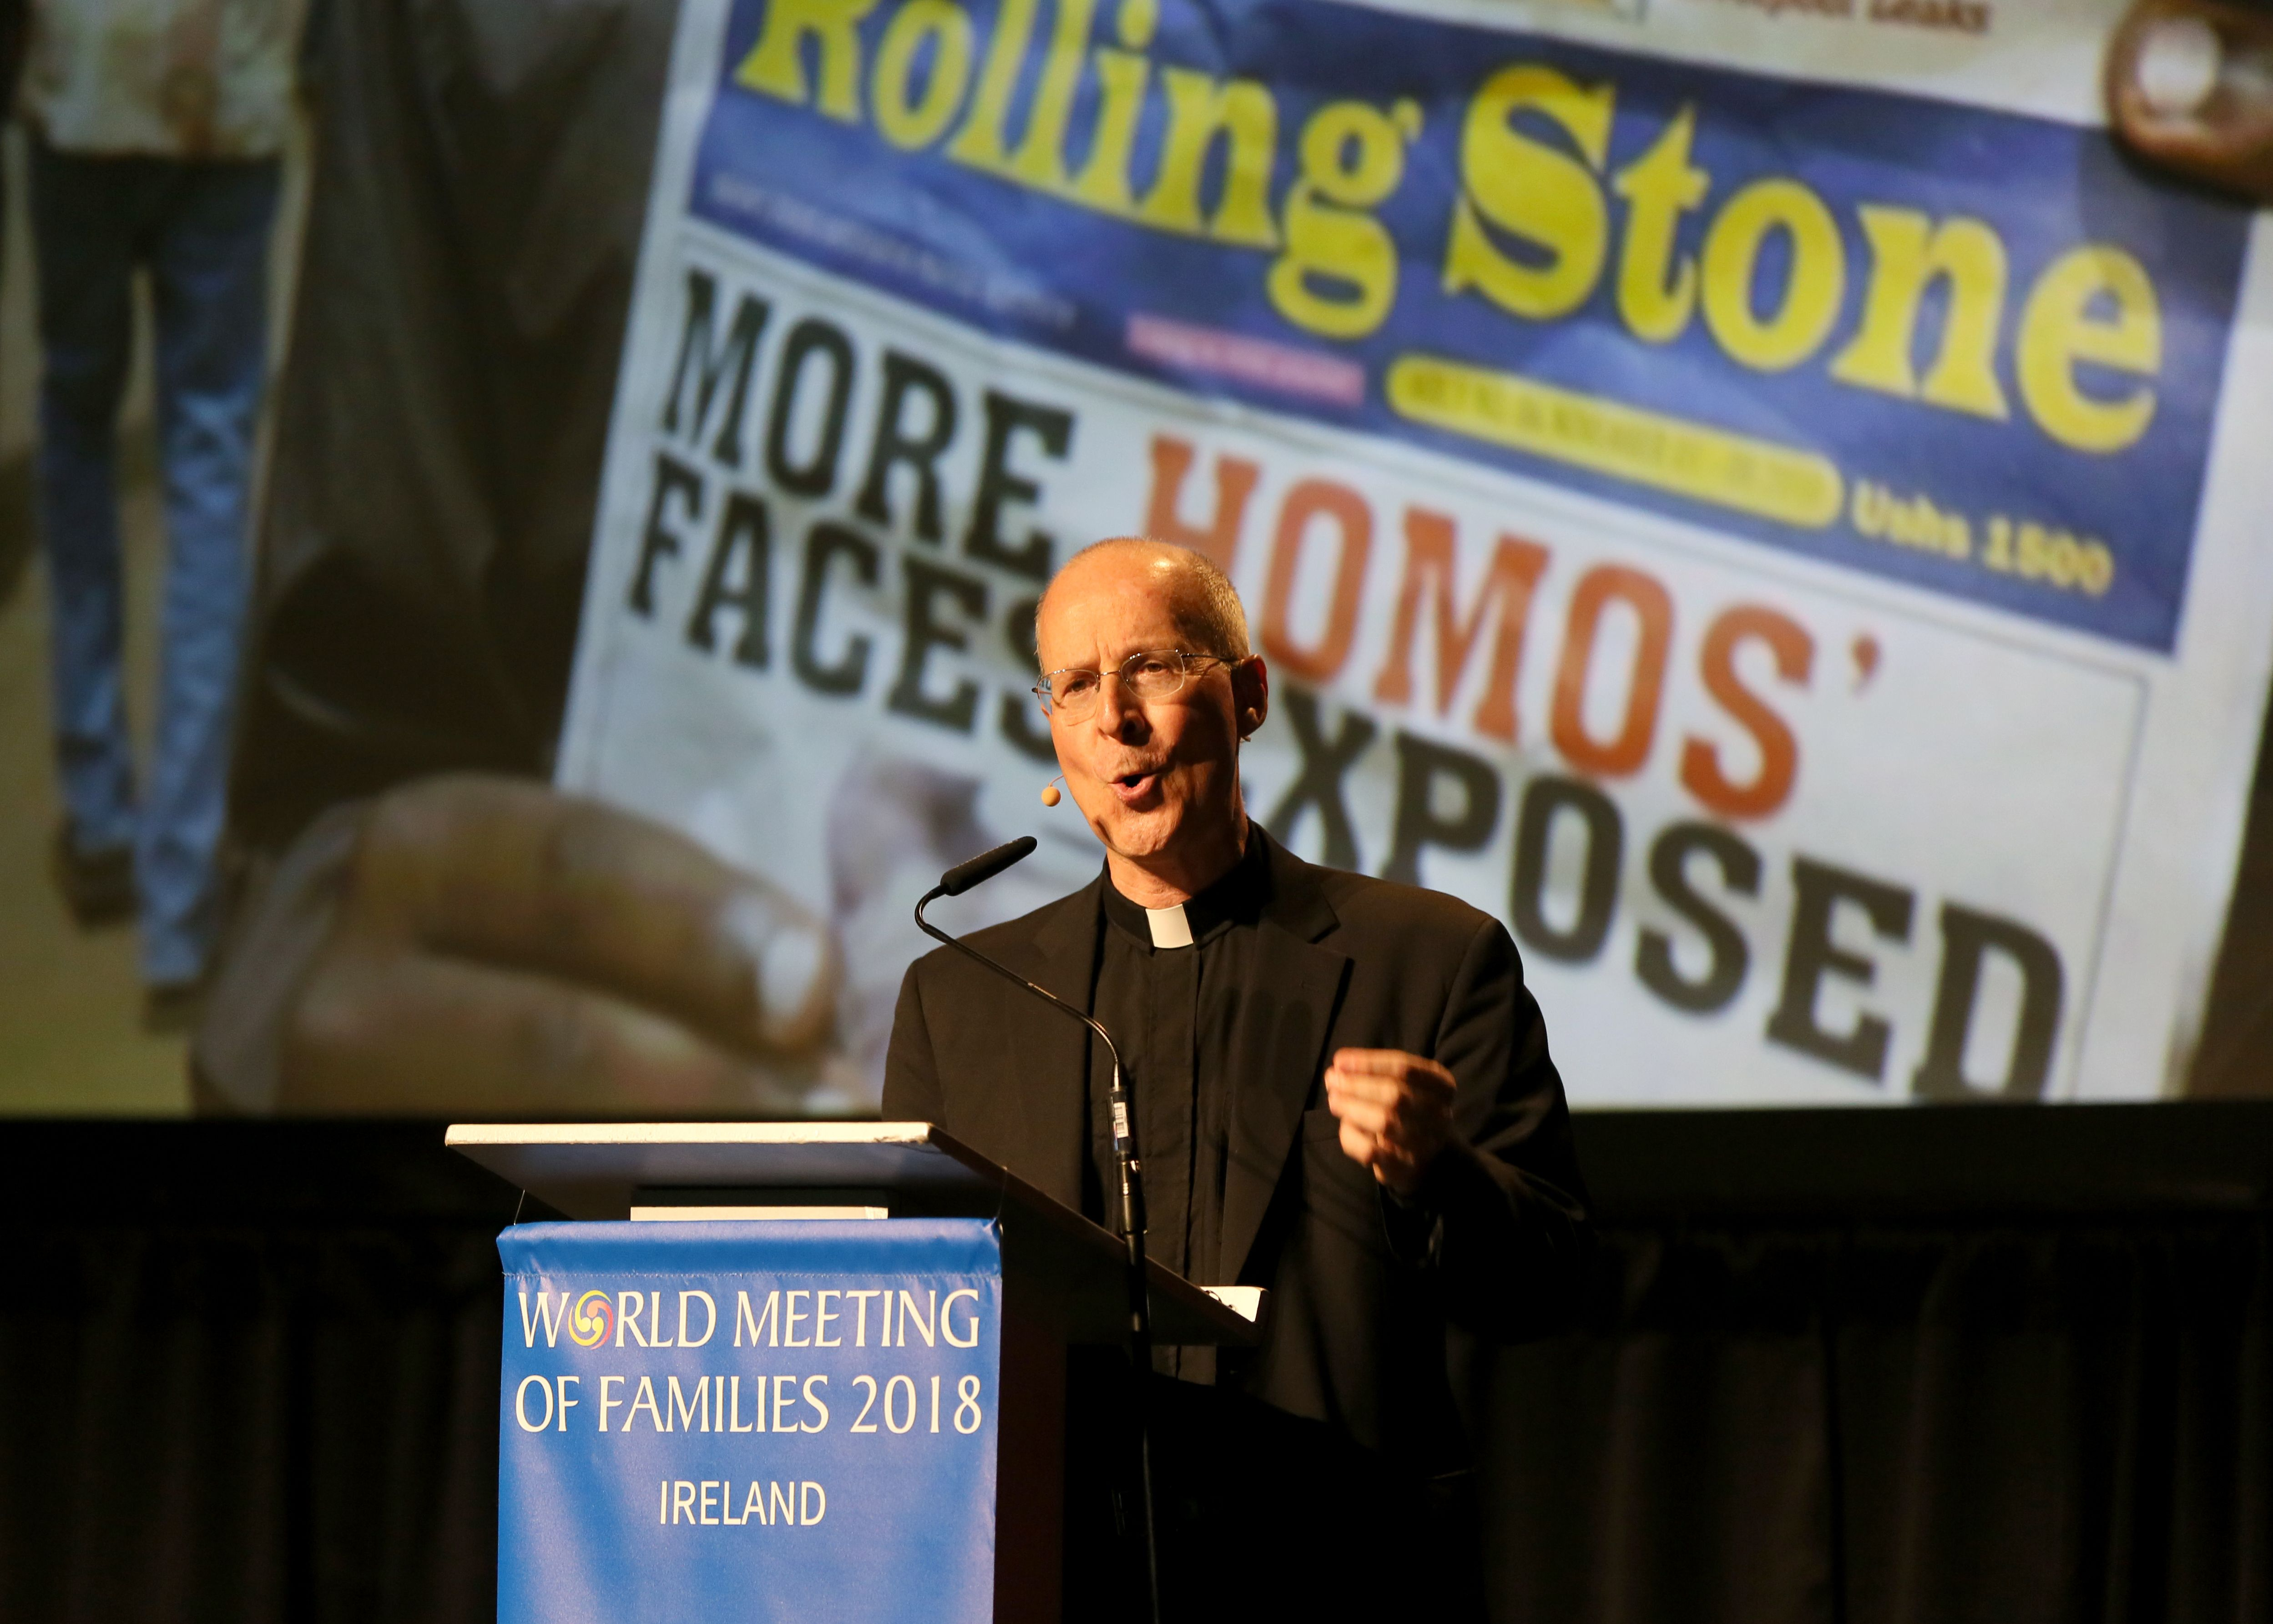 US Jesuit priest James Martin speaks at the World Meeting of Families in Dublin on August 23, 2018. (PAUL FAITH/AFP/Getty Images)